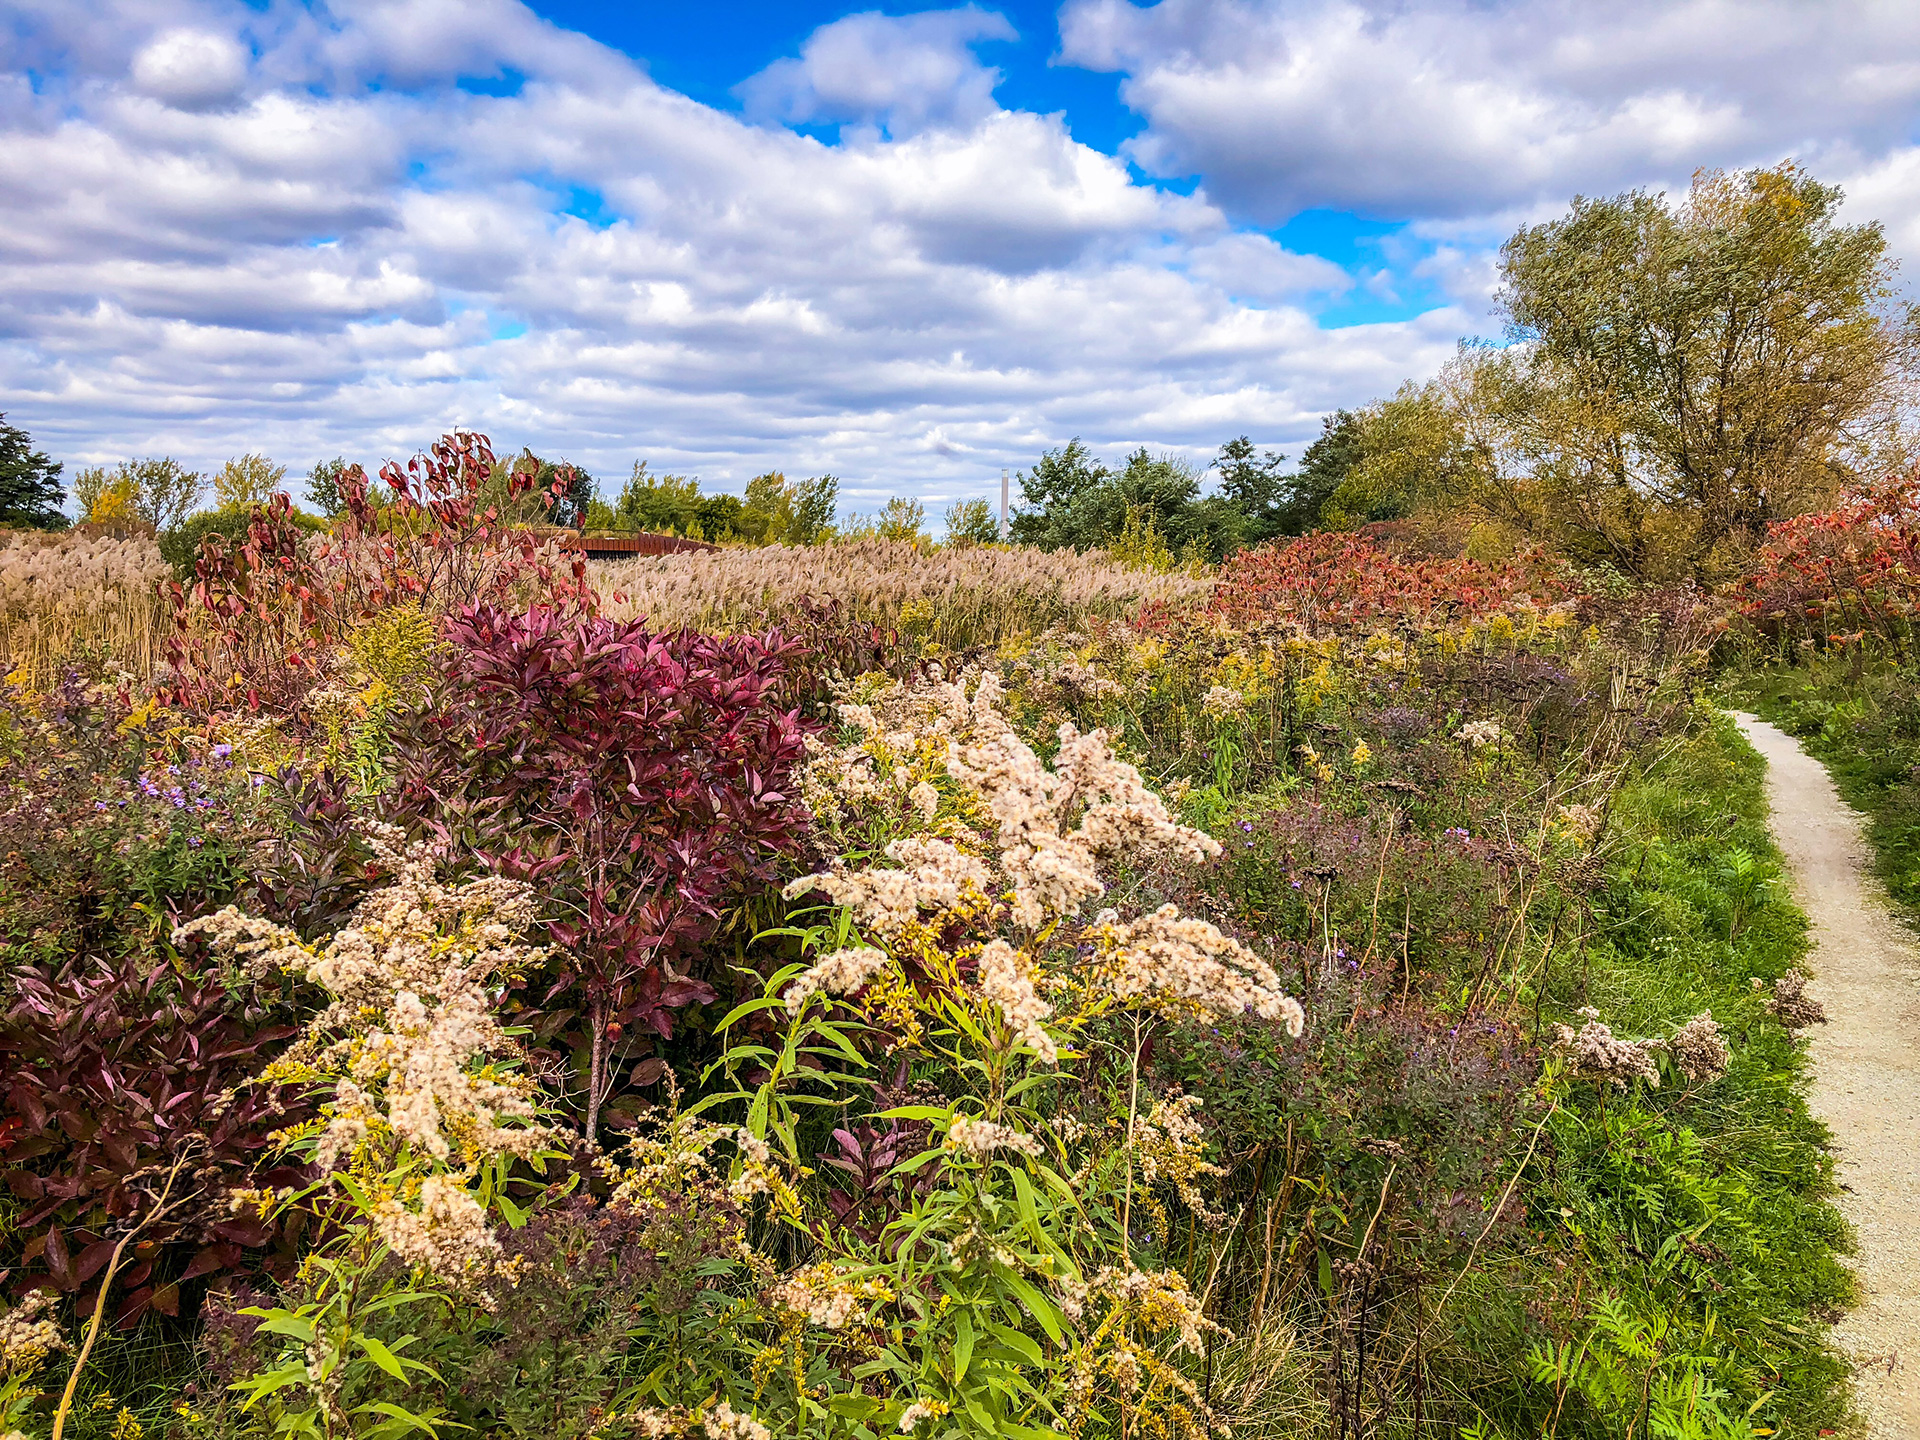 A trail through a meadow at Tommy Thompson Park in the autumn. Photo by Amanda Kohler.